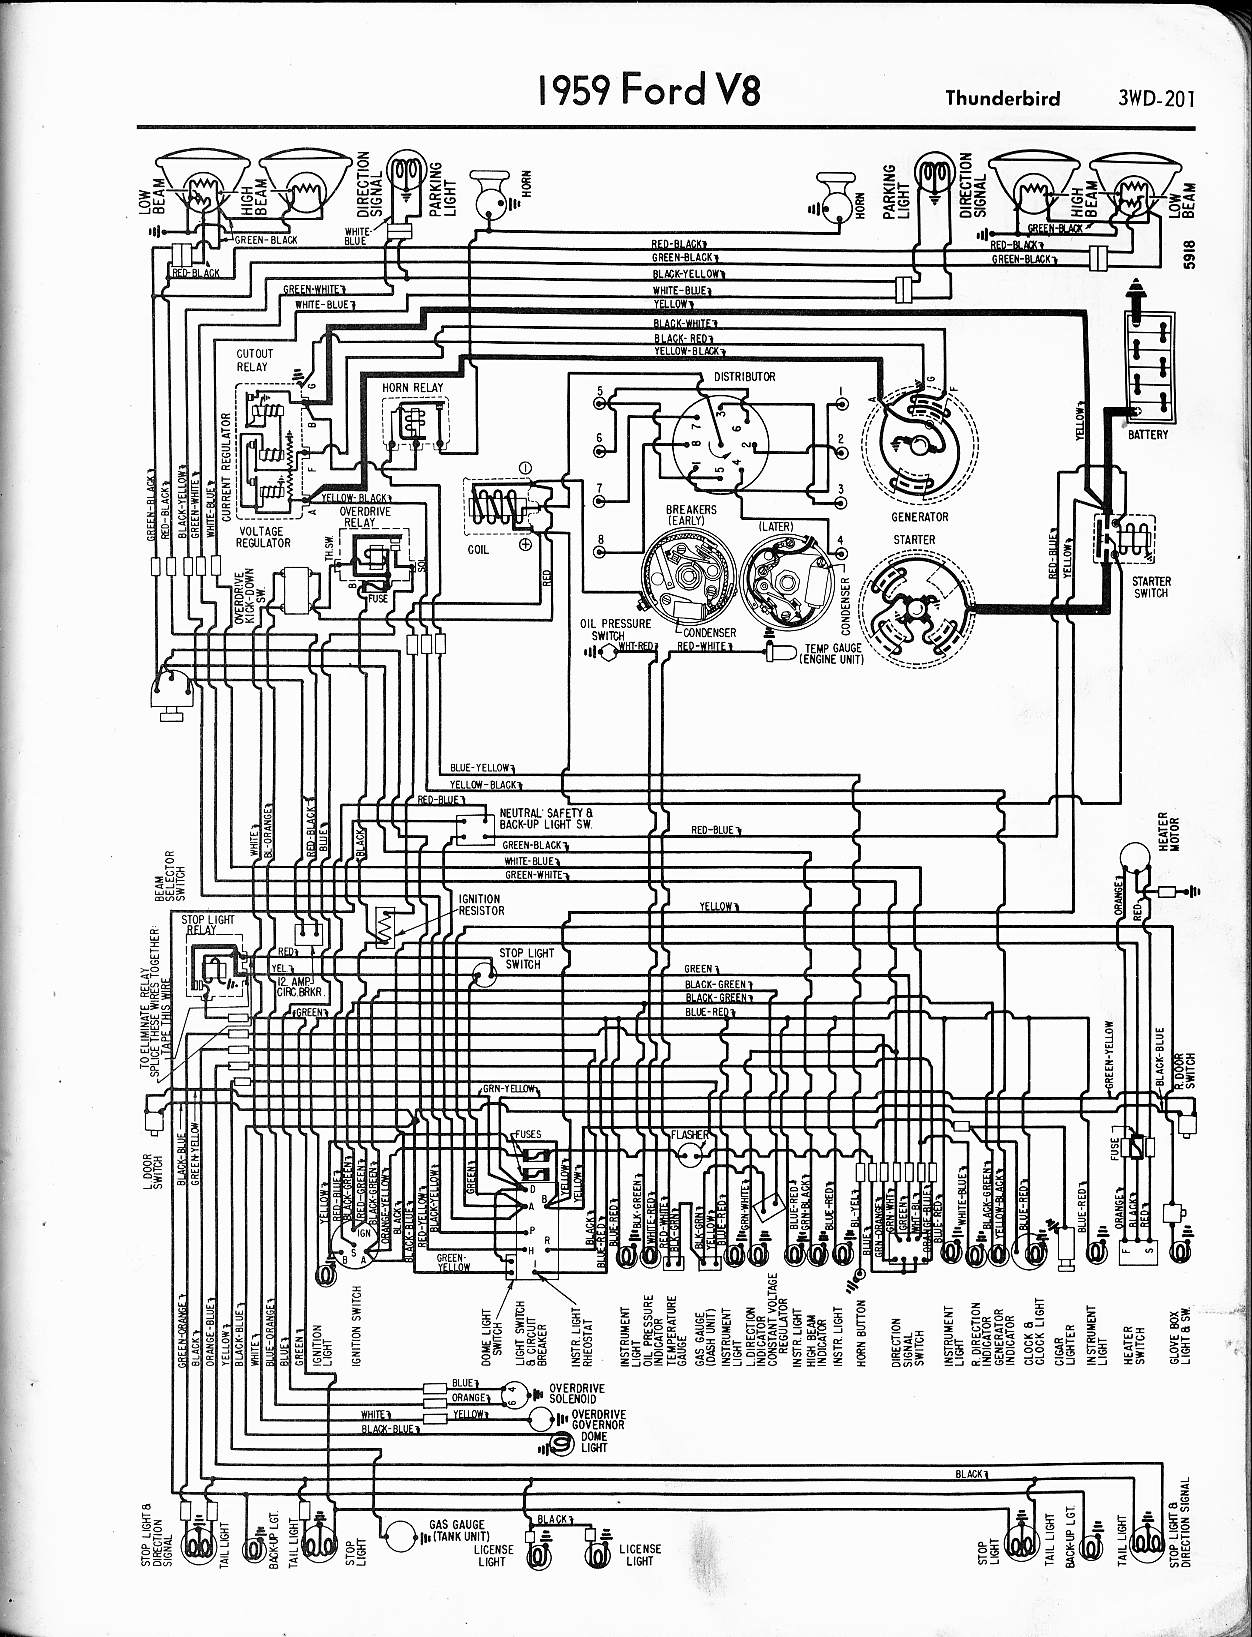 57 65 ford wiring diagrams Ford Electrical Diagram 1959 thunderbird